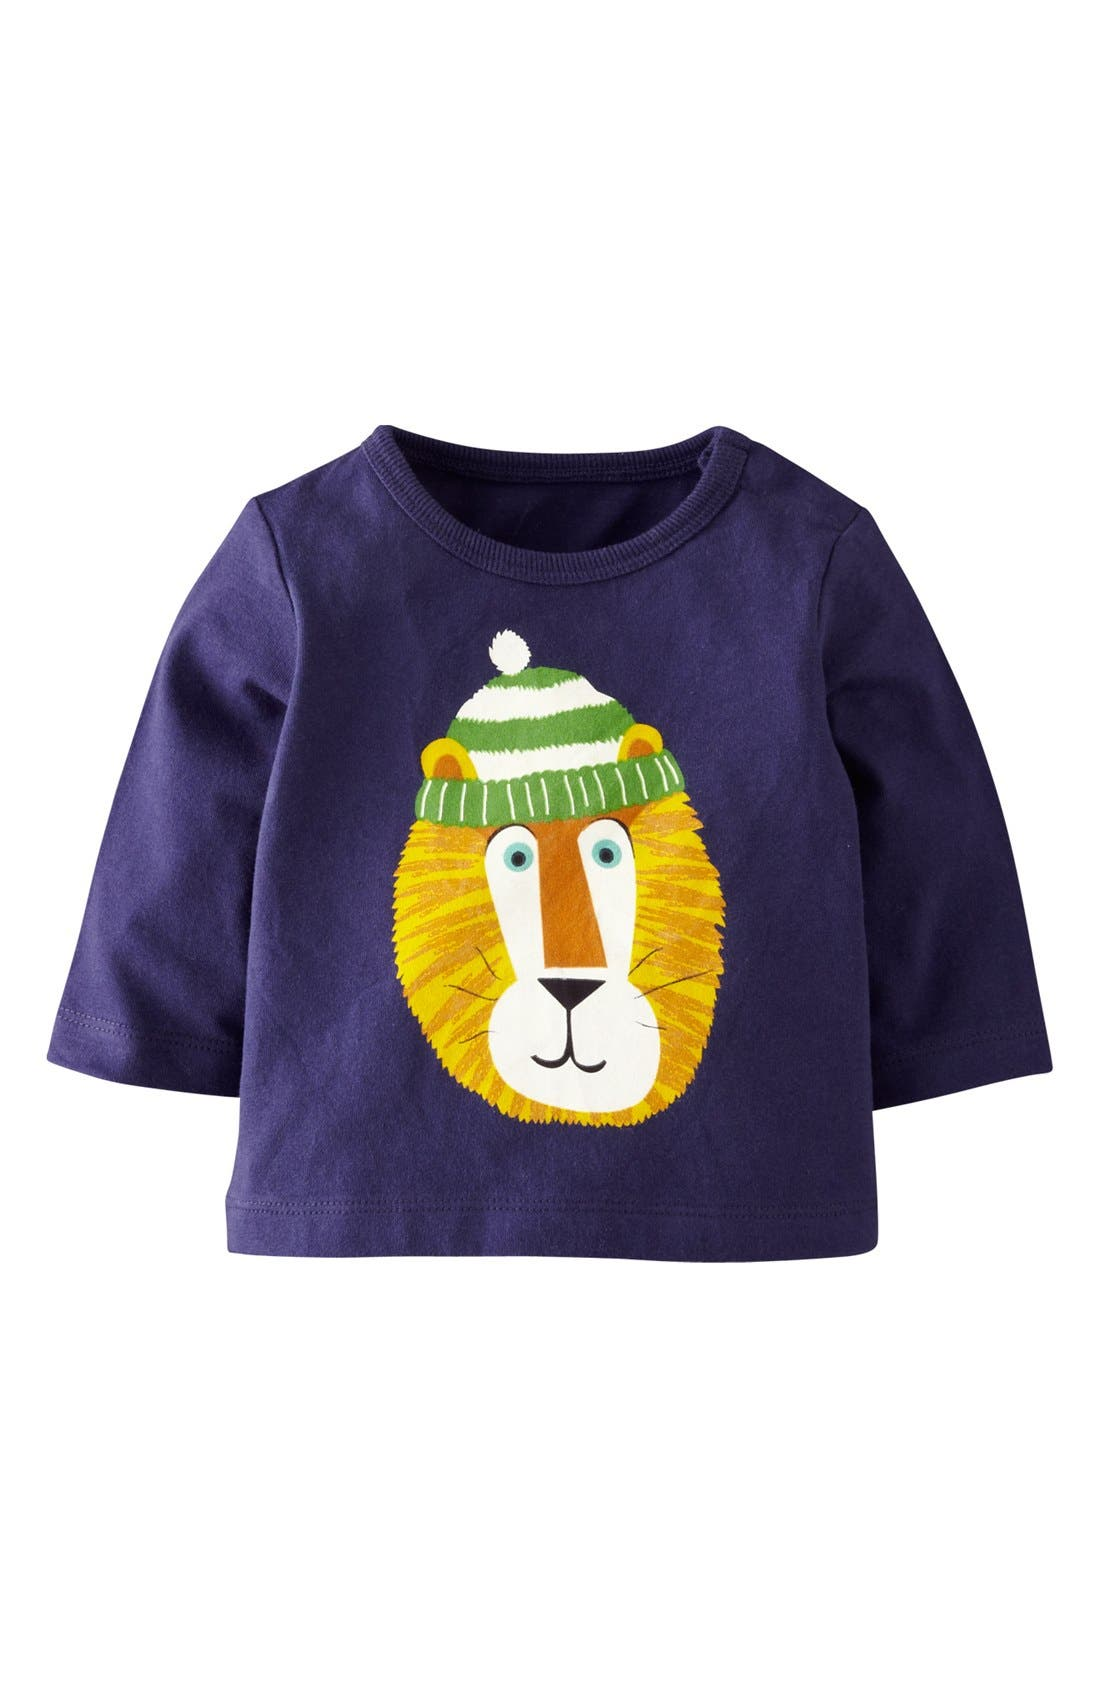 Alternate Image 1 Selected - Mini Boden Screenprint T-Shirt (Baby Boys)